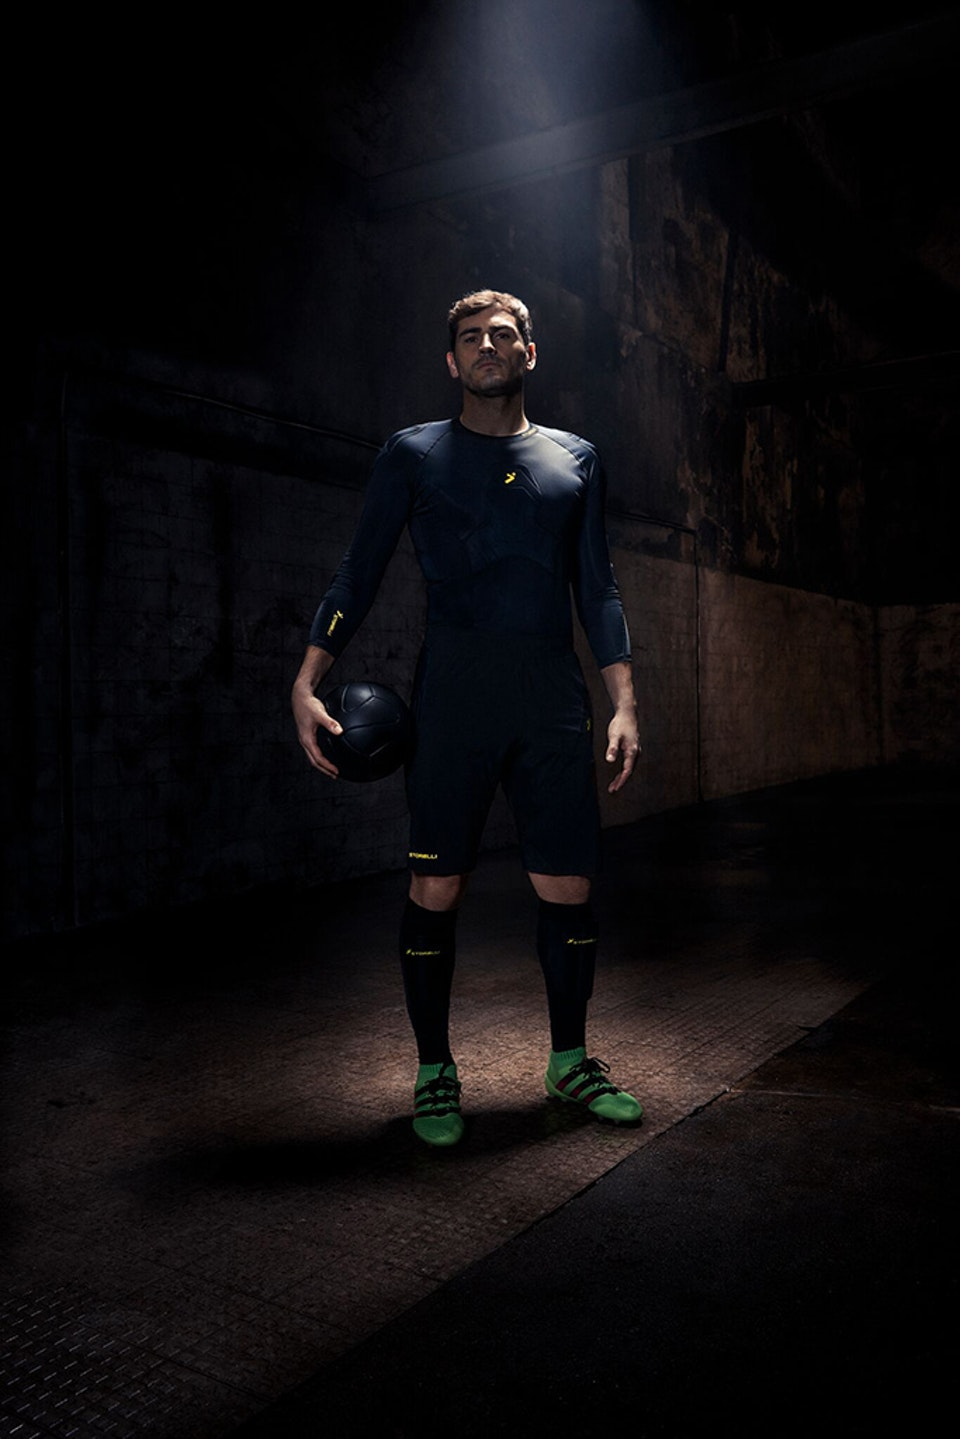 Storelli casillas